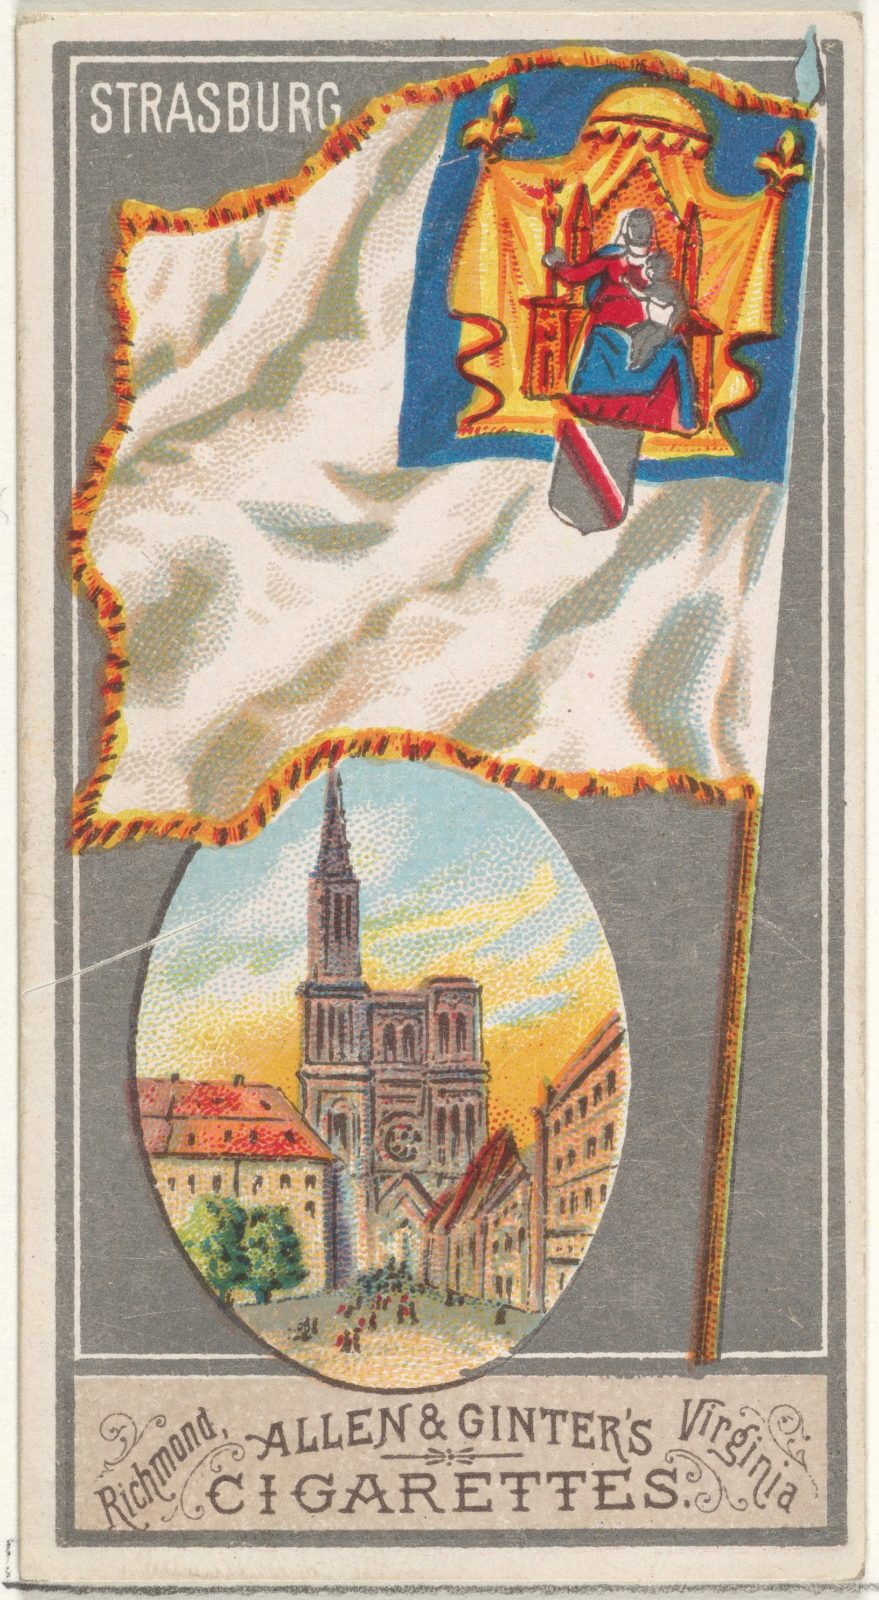 Strasburg, from the City Flags series (N6) for Allen & Ginter Cigarettes Brands